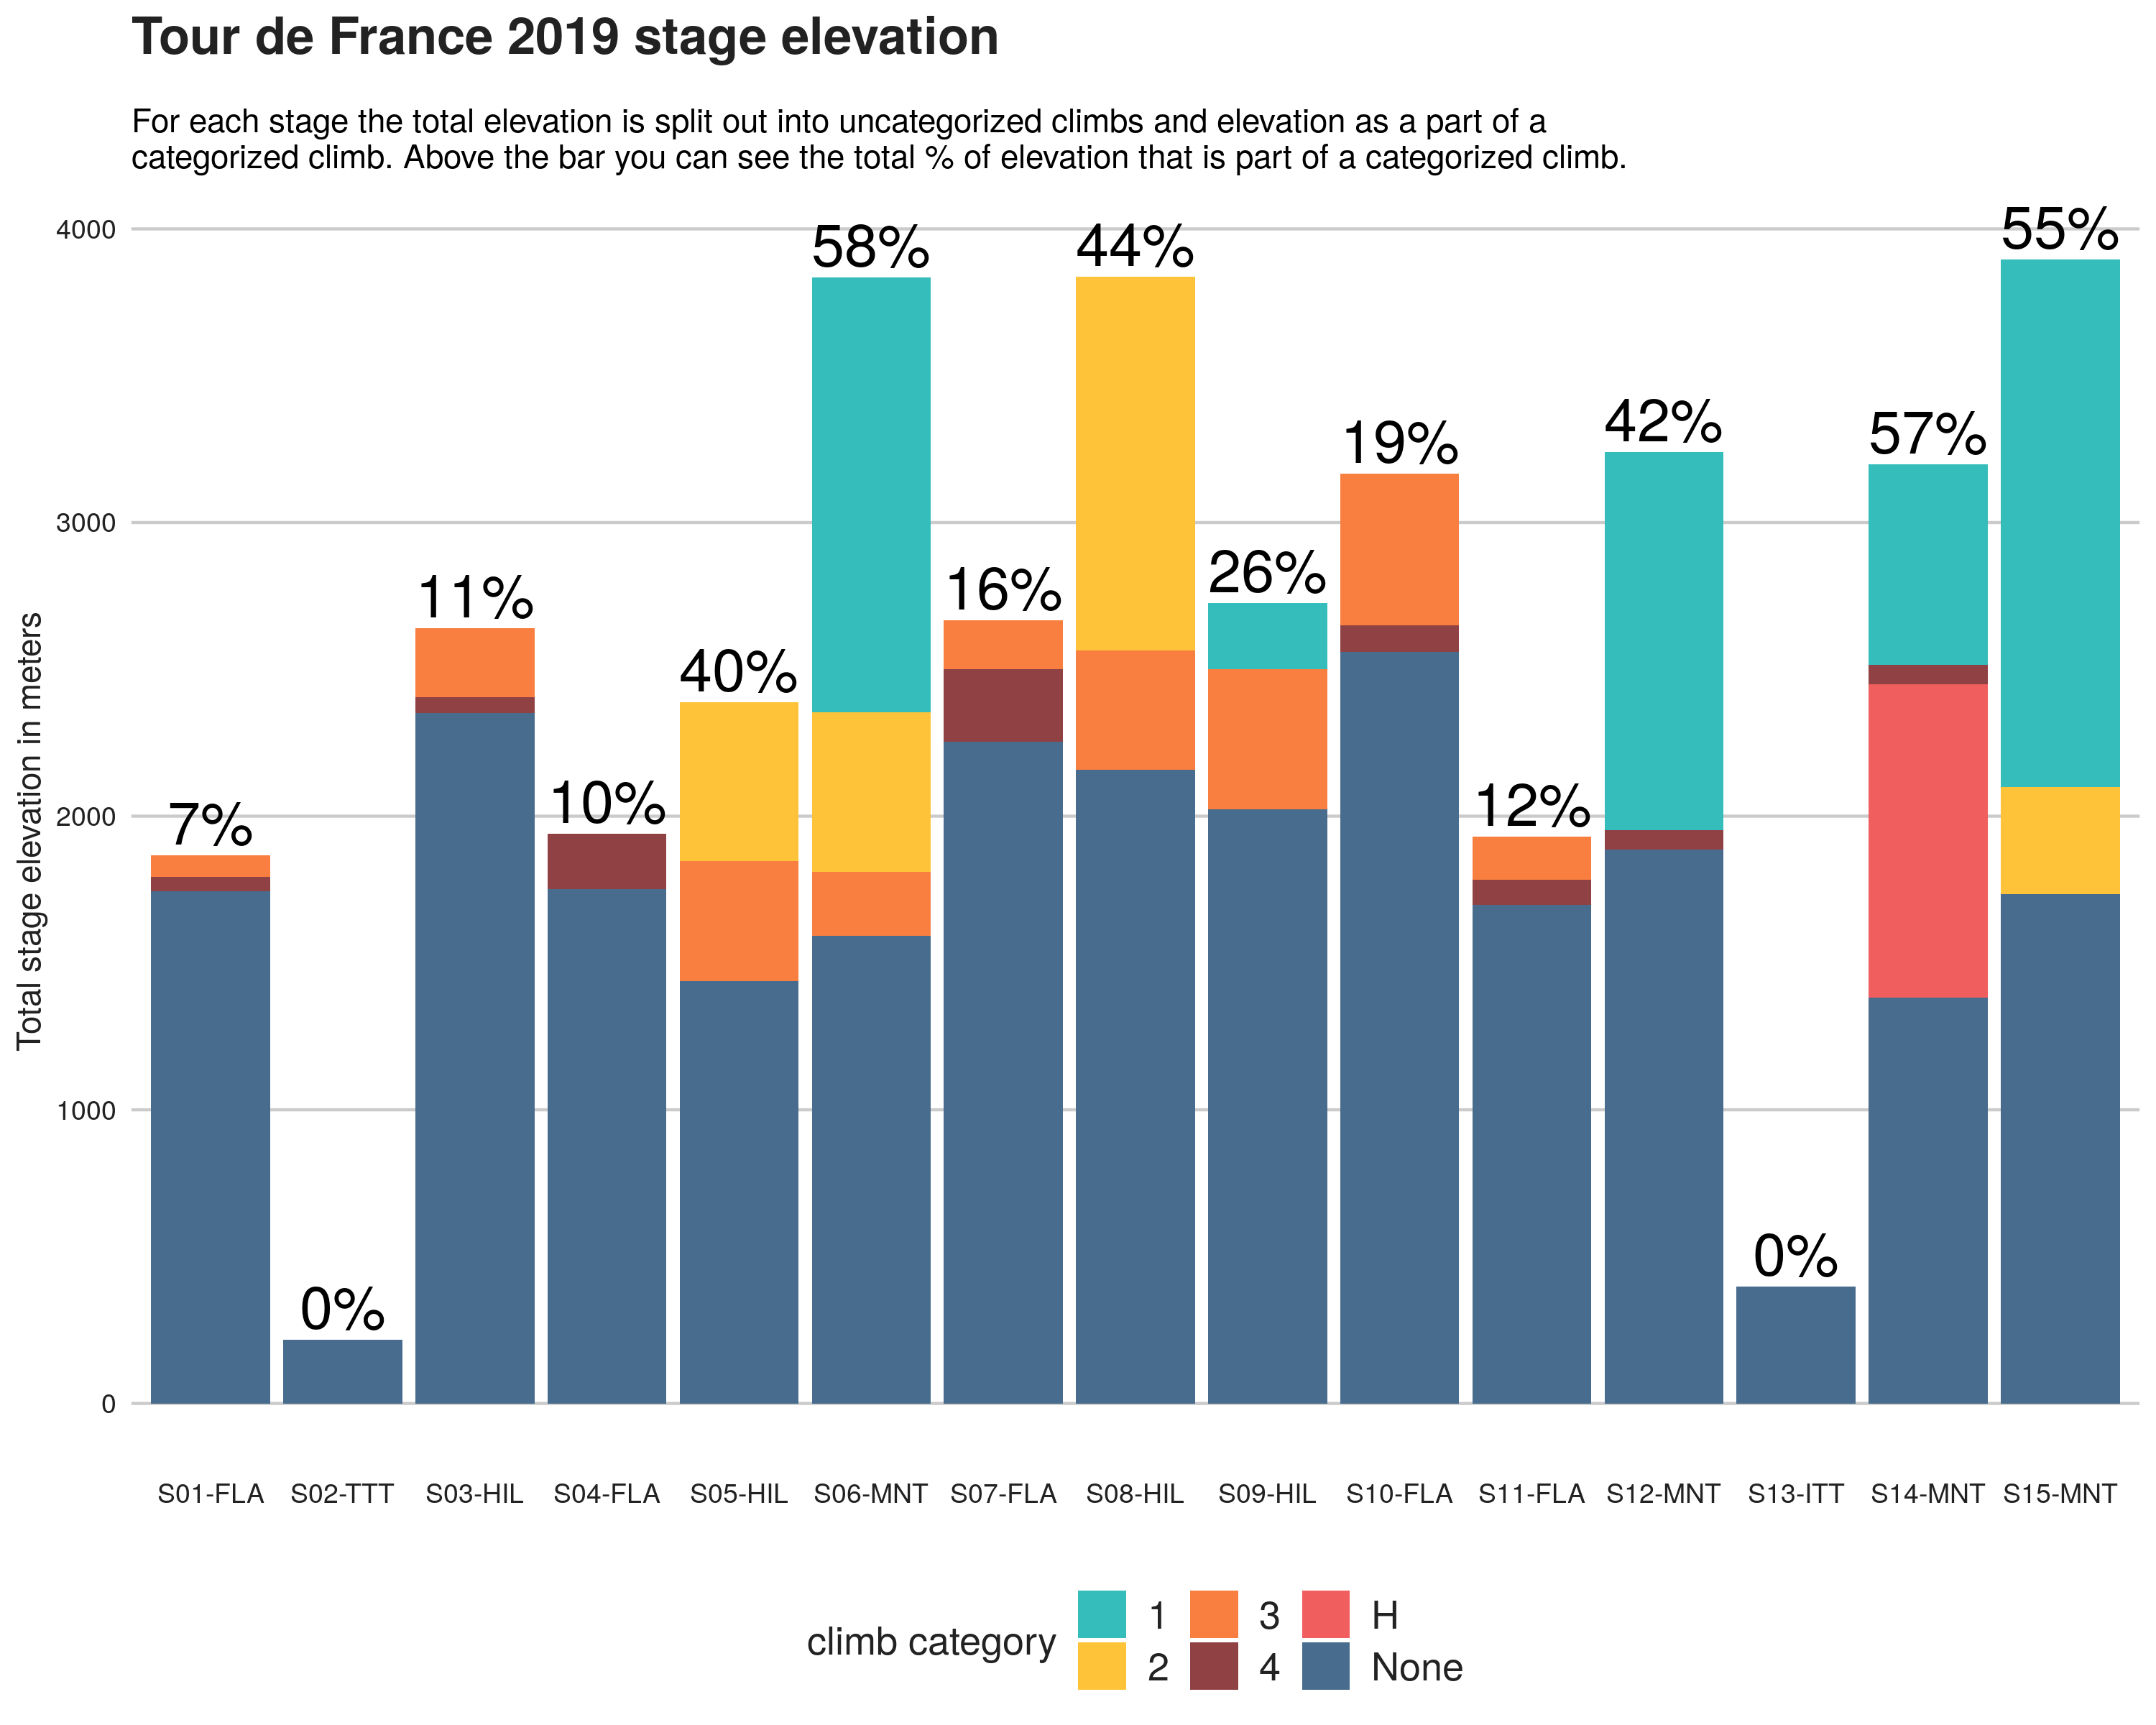 Tour de France 2019 stage elevation and the percentage of elevation that is categorized.